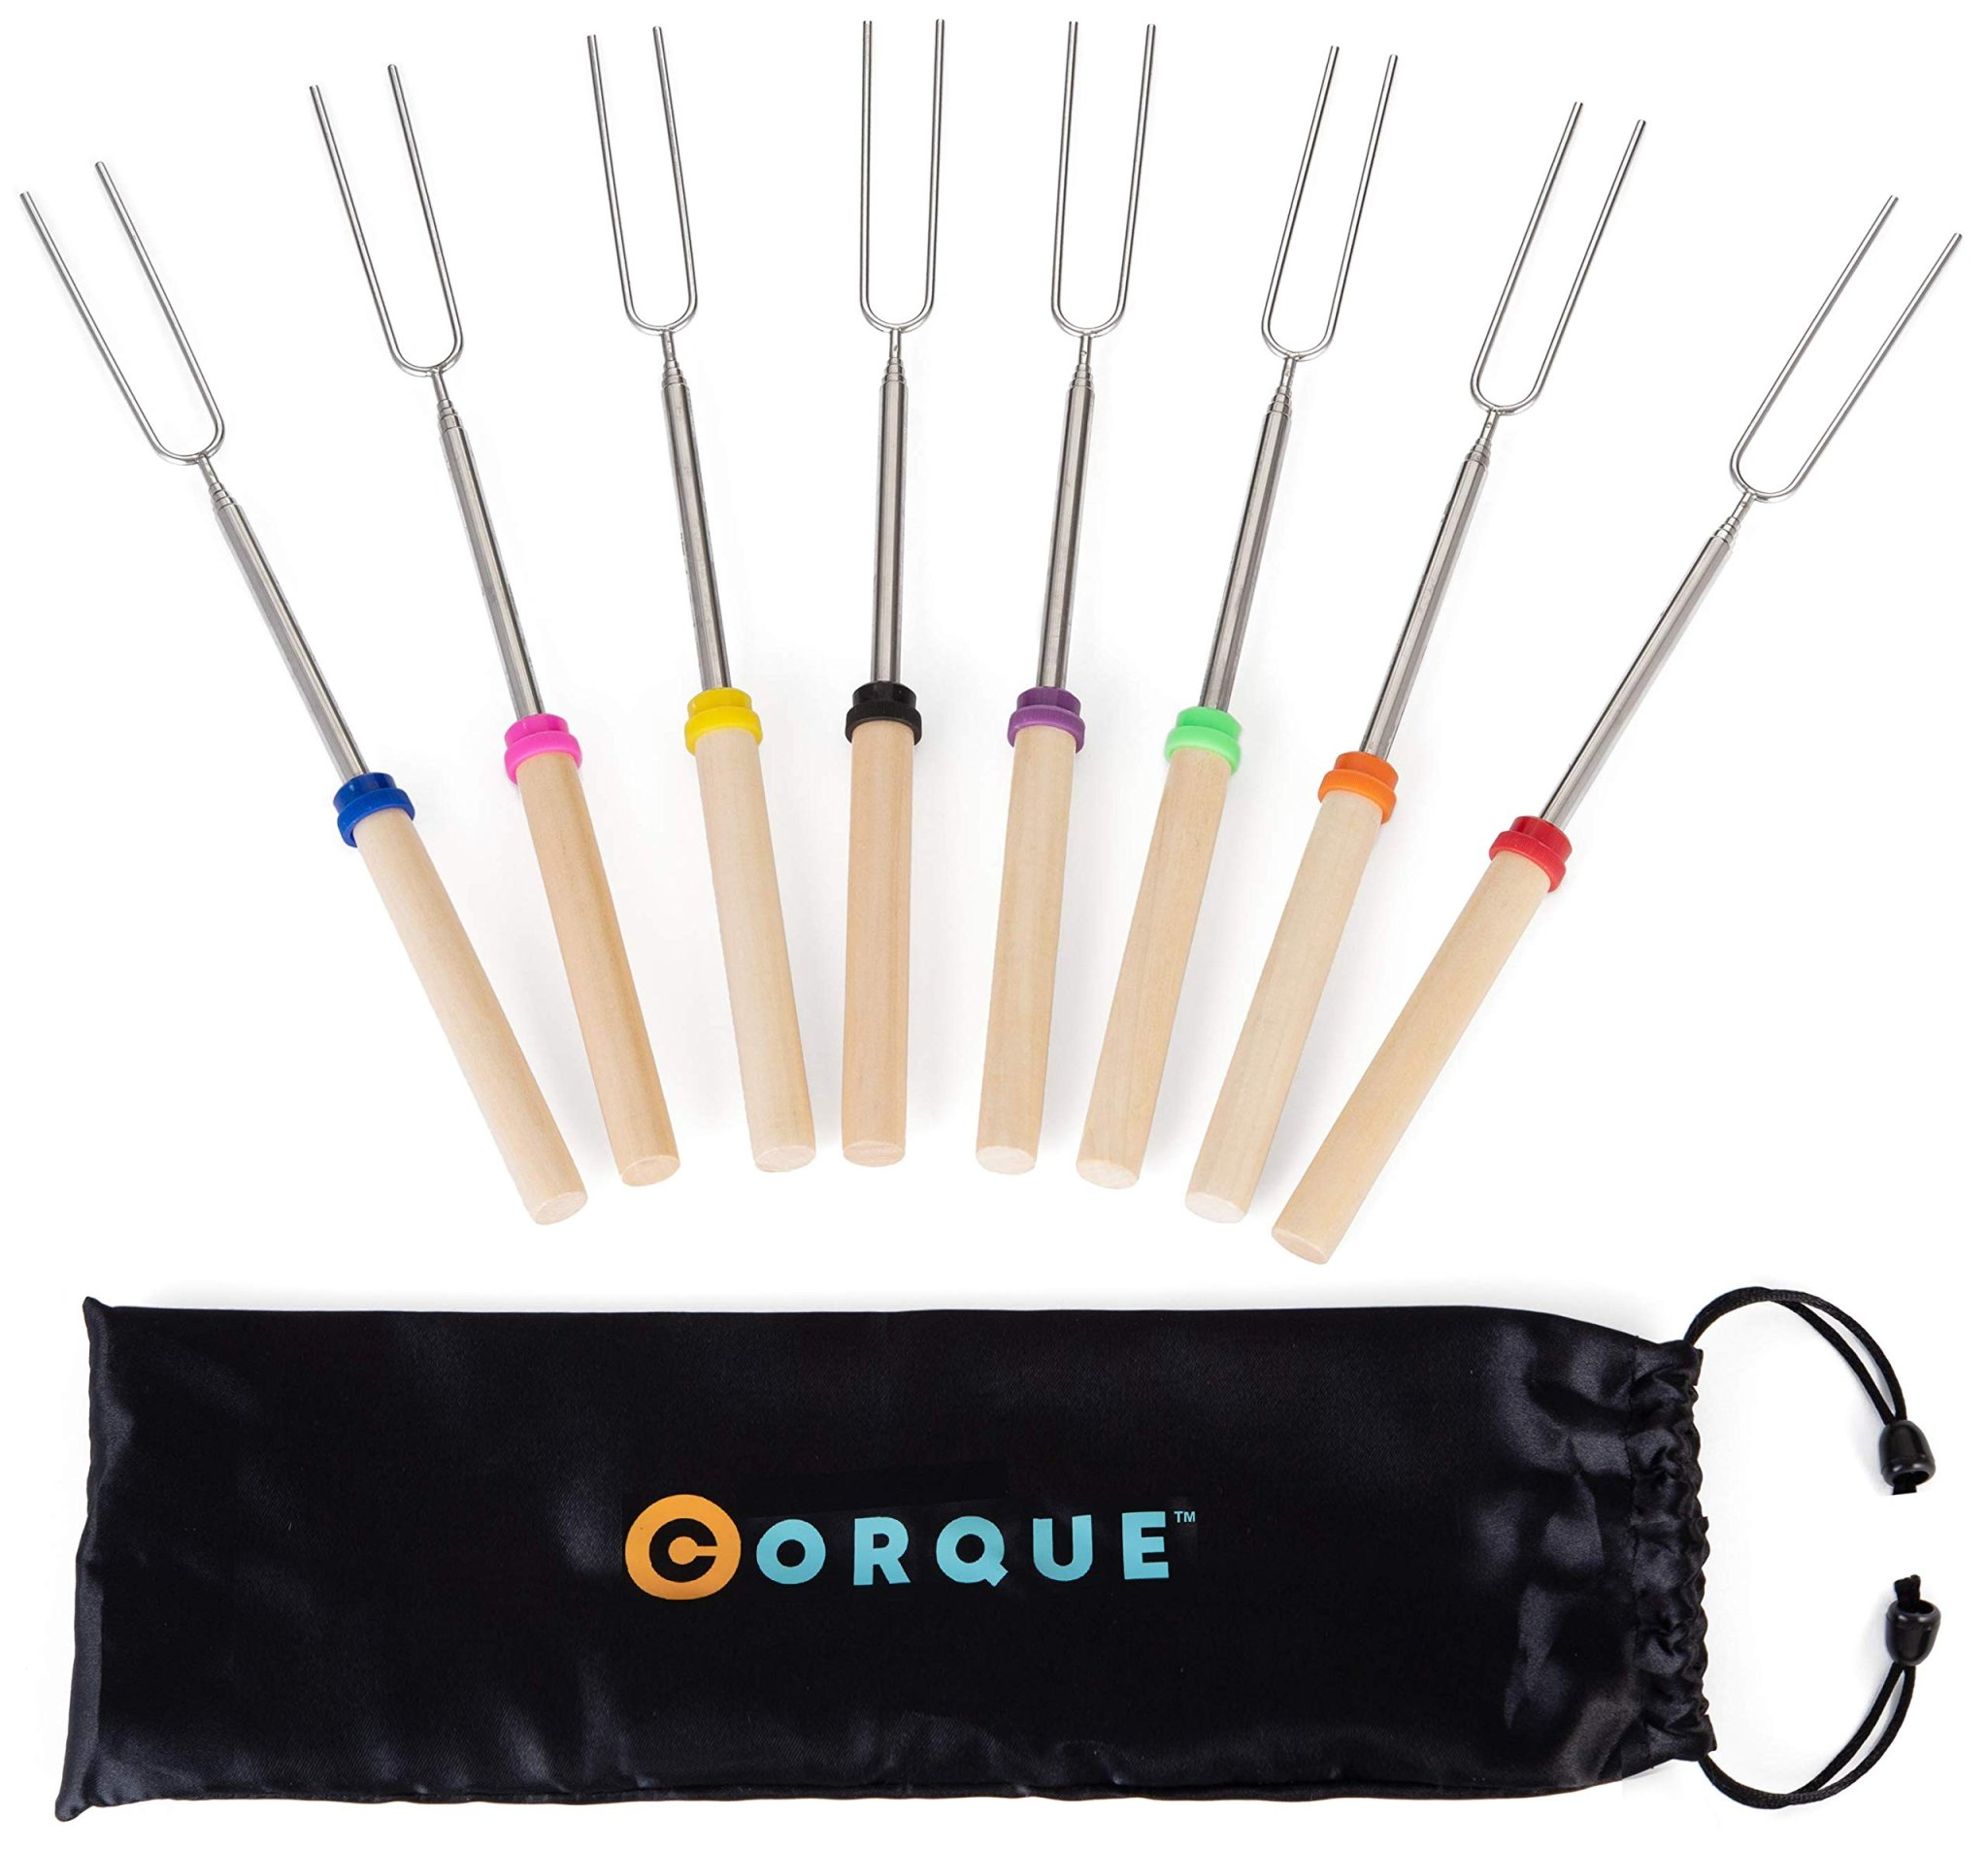 Extendable camping skewers